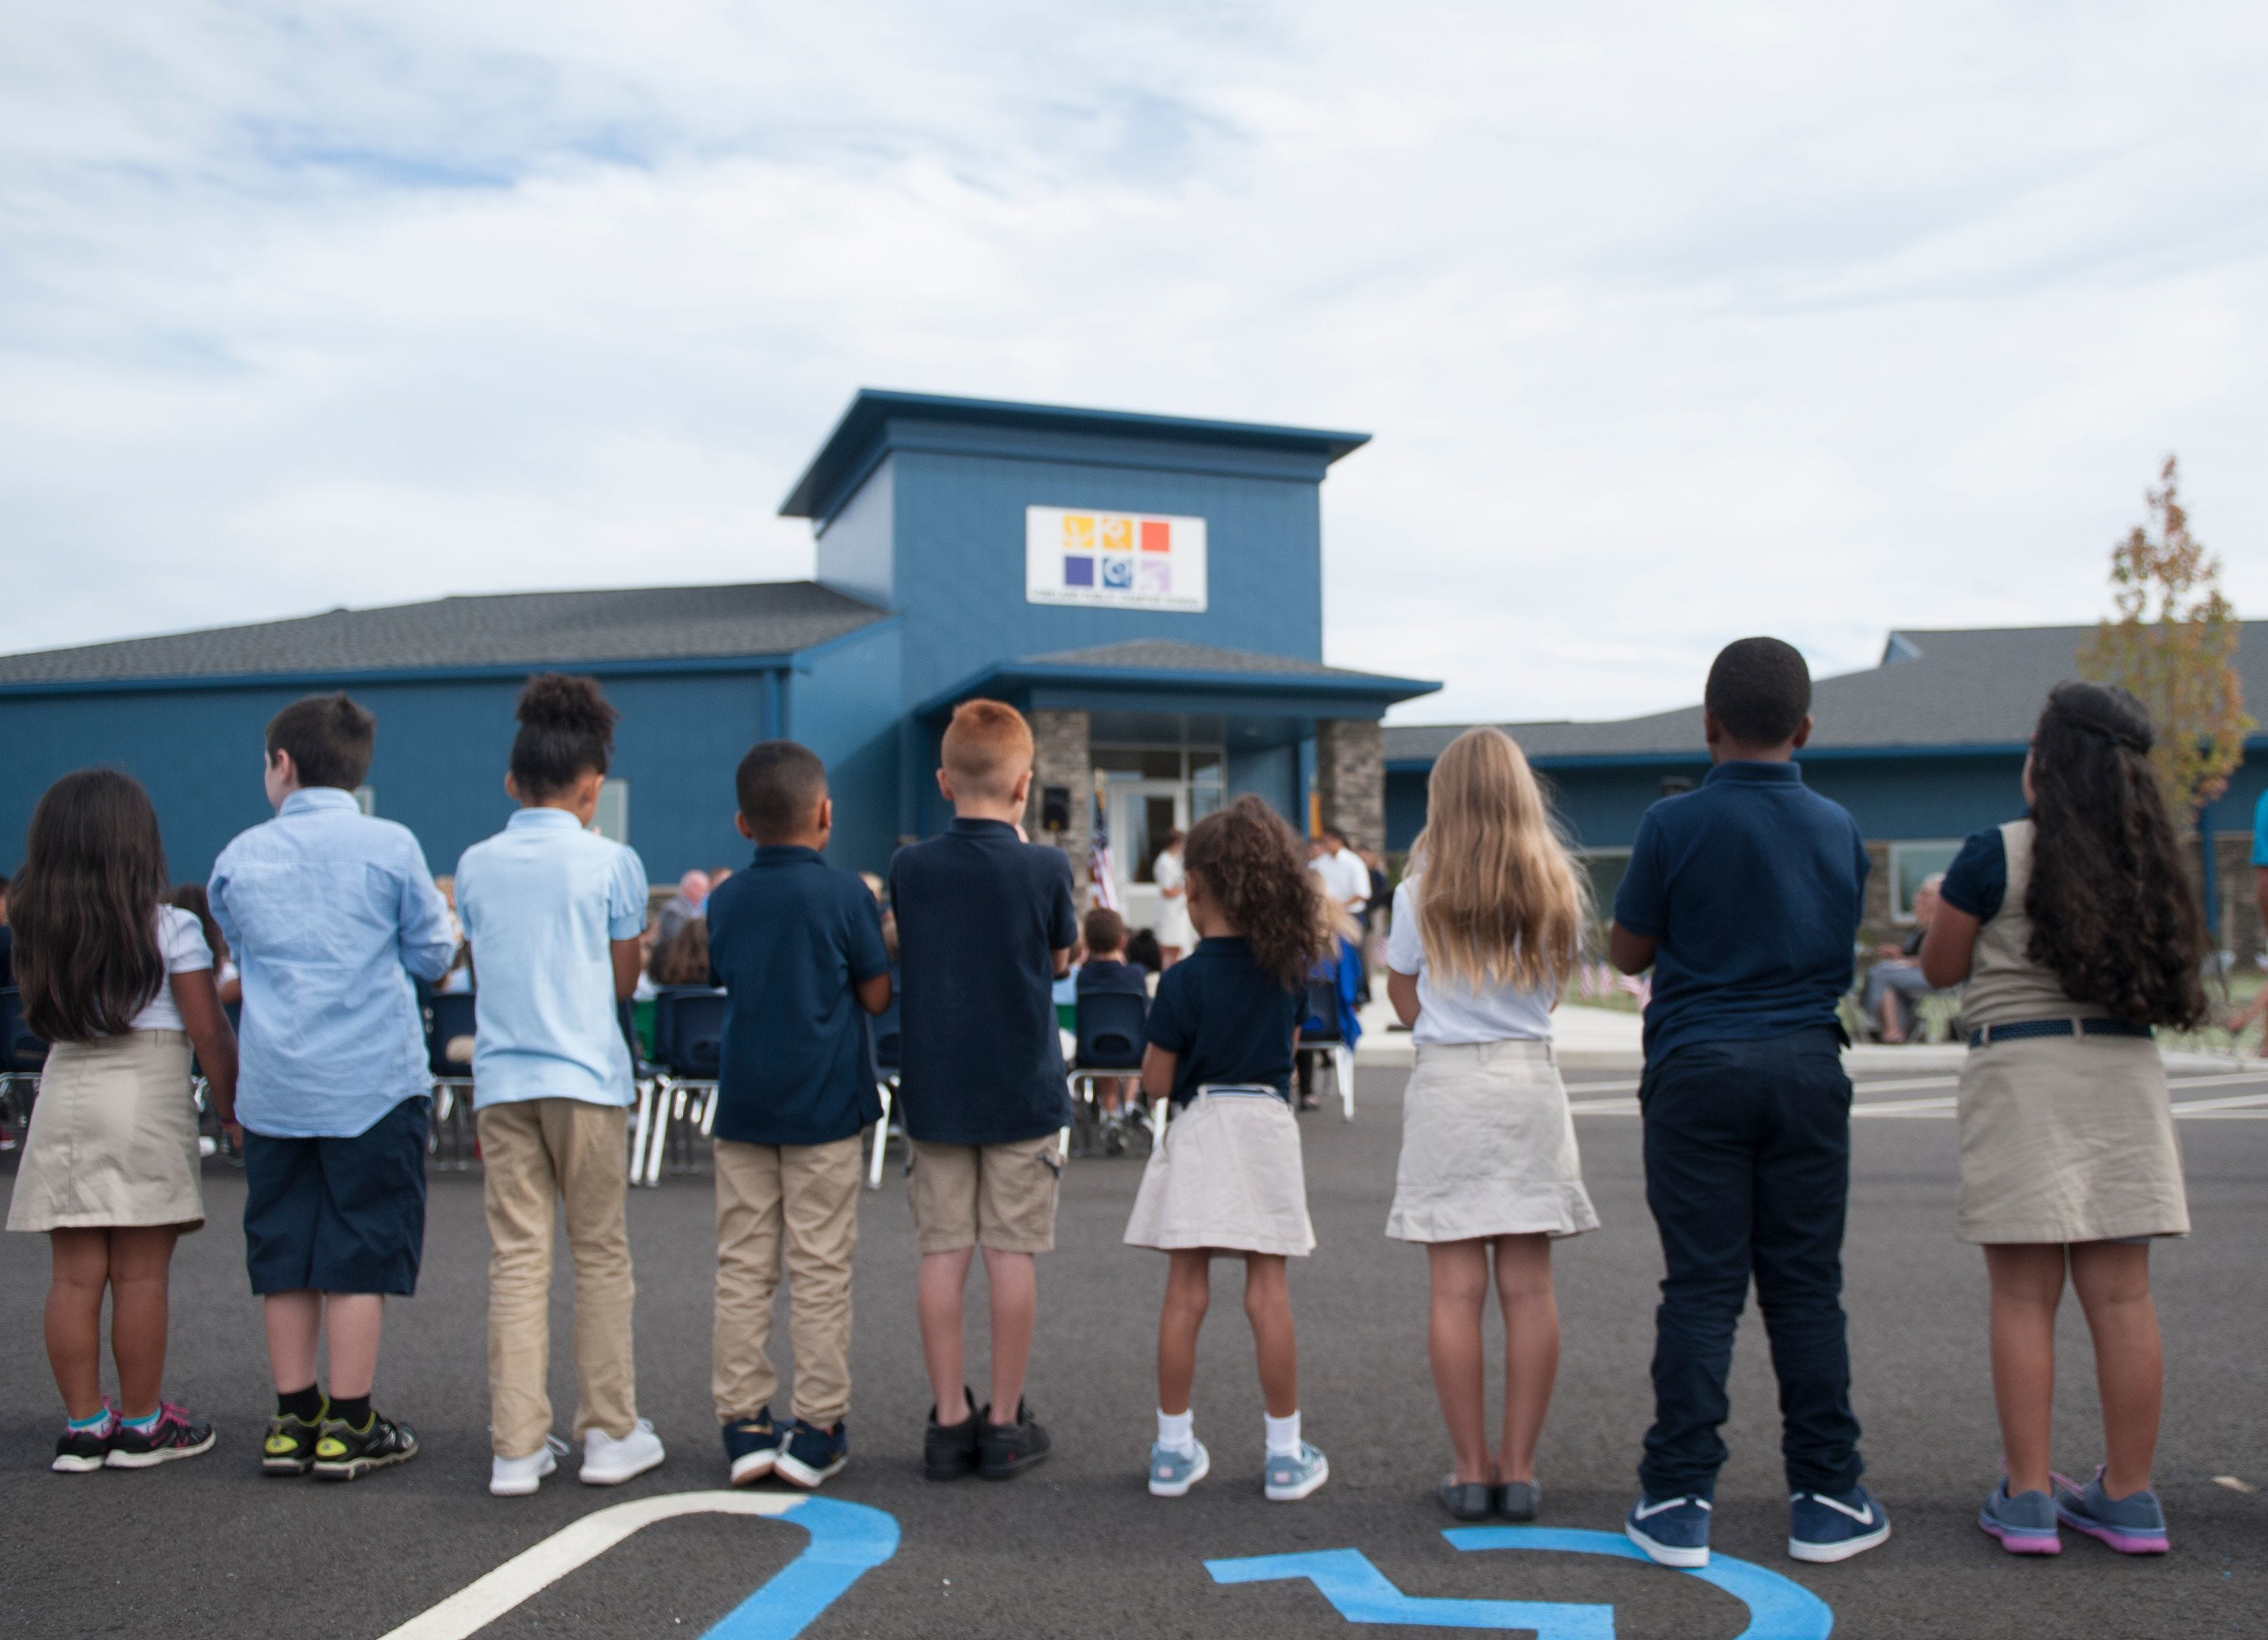 Children watch the ribbon-cutting ceremony for the new Vineland Public Charter School building in 2017.